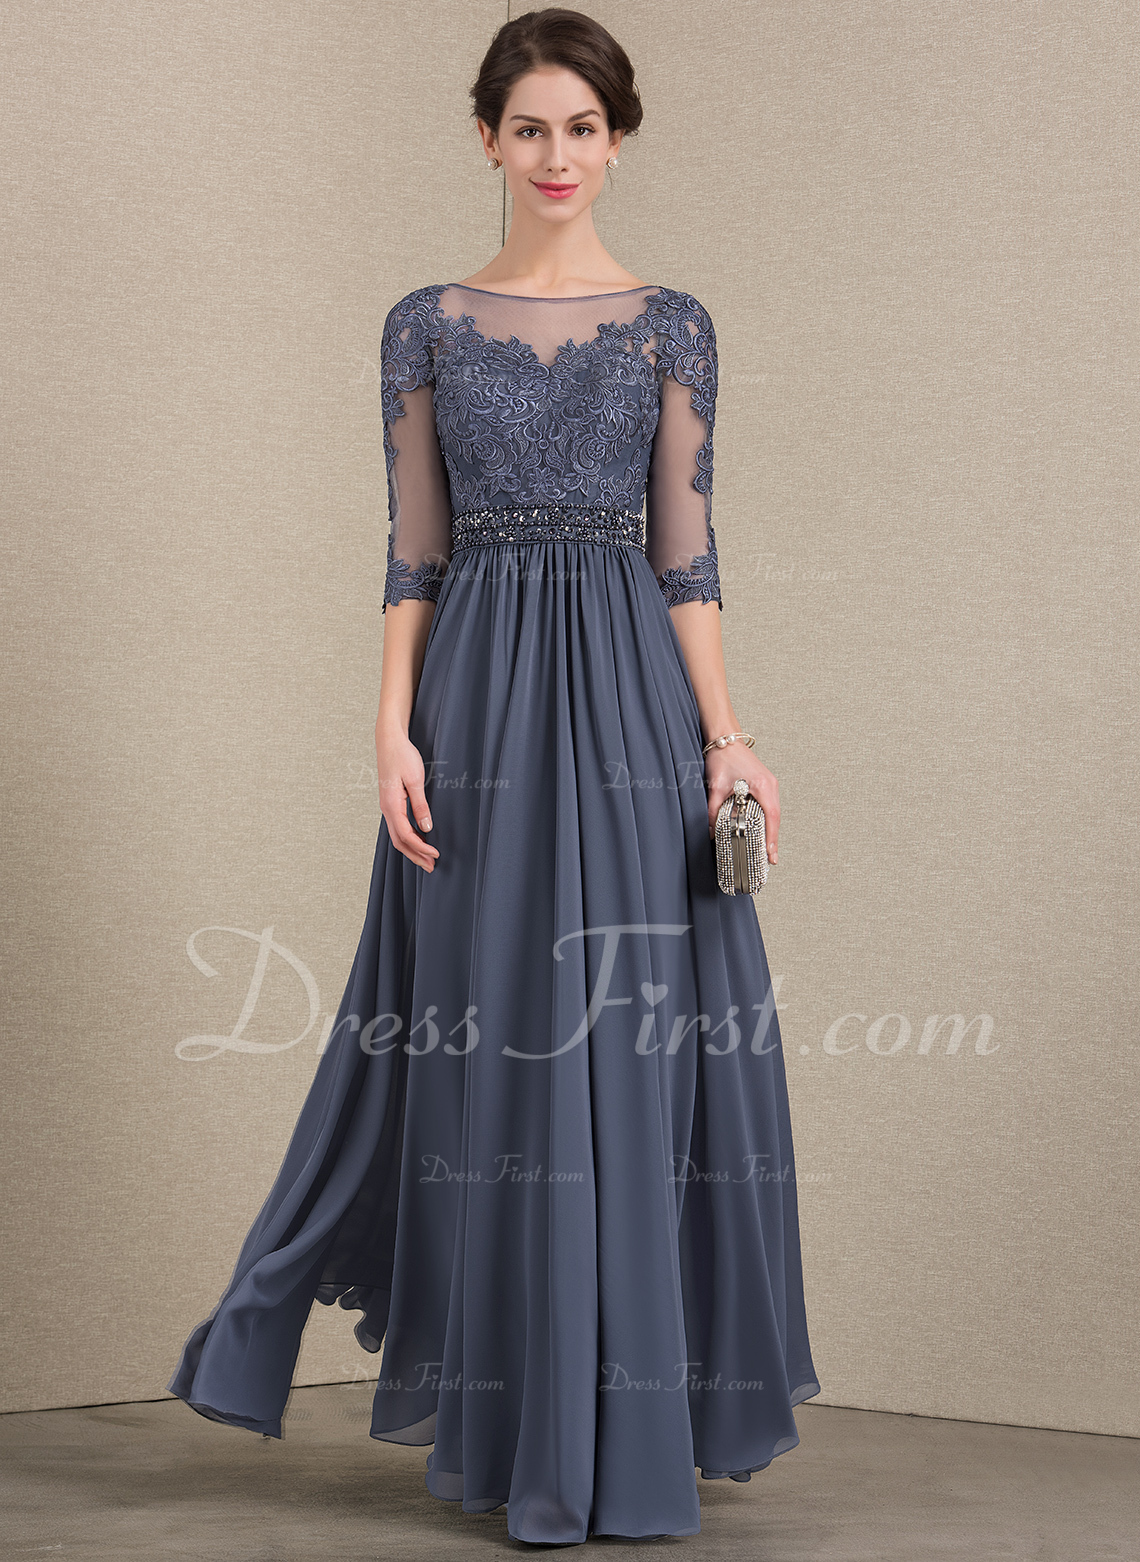 606f8e541bf A-Line Princess Scoop Neck Floor-Length Chiffon Lace Mother of the Bride  Dress With Beading Sequins  143370